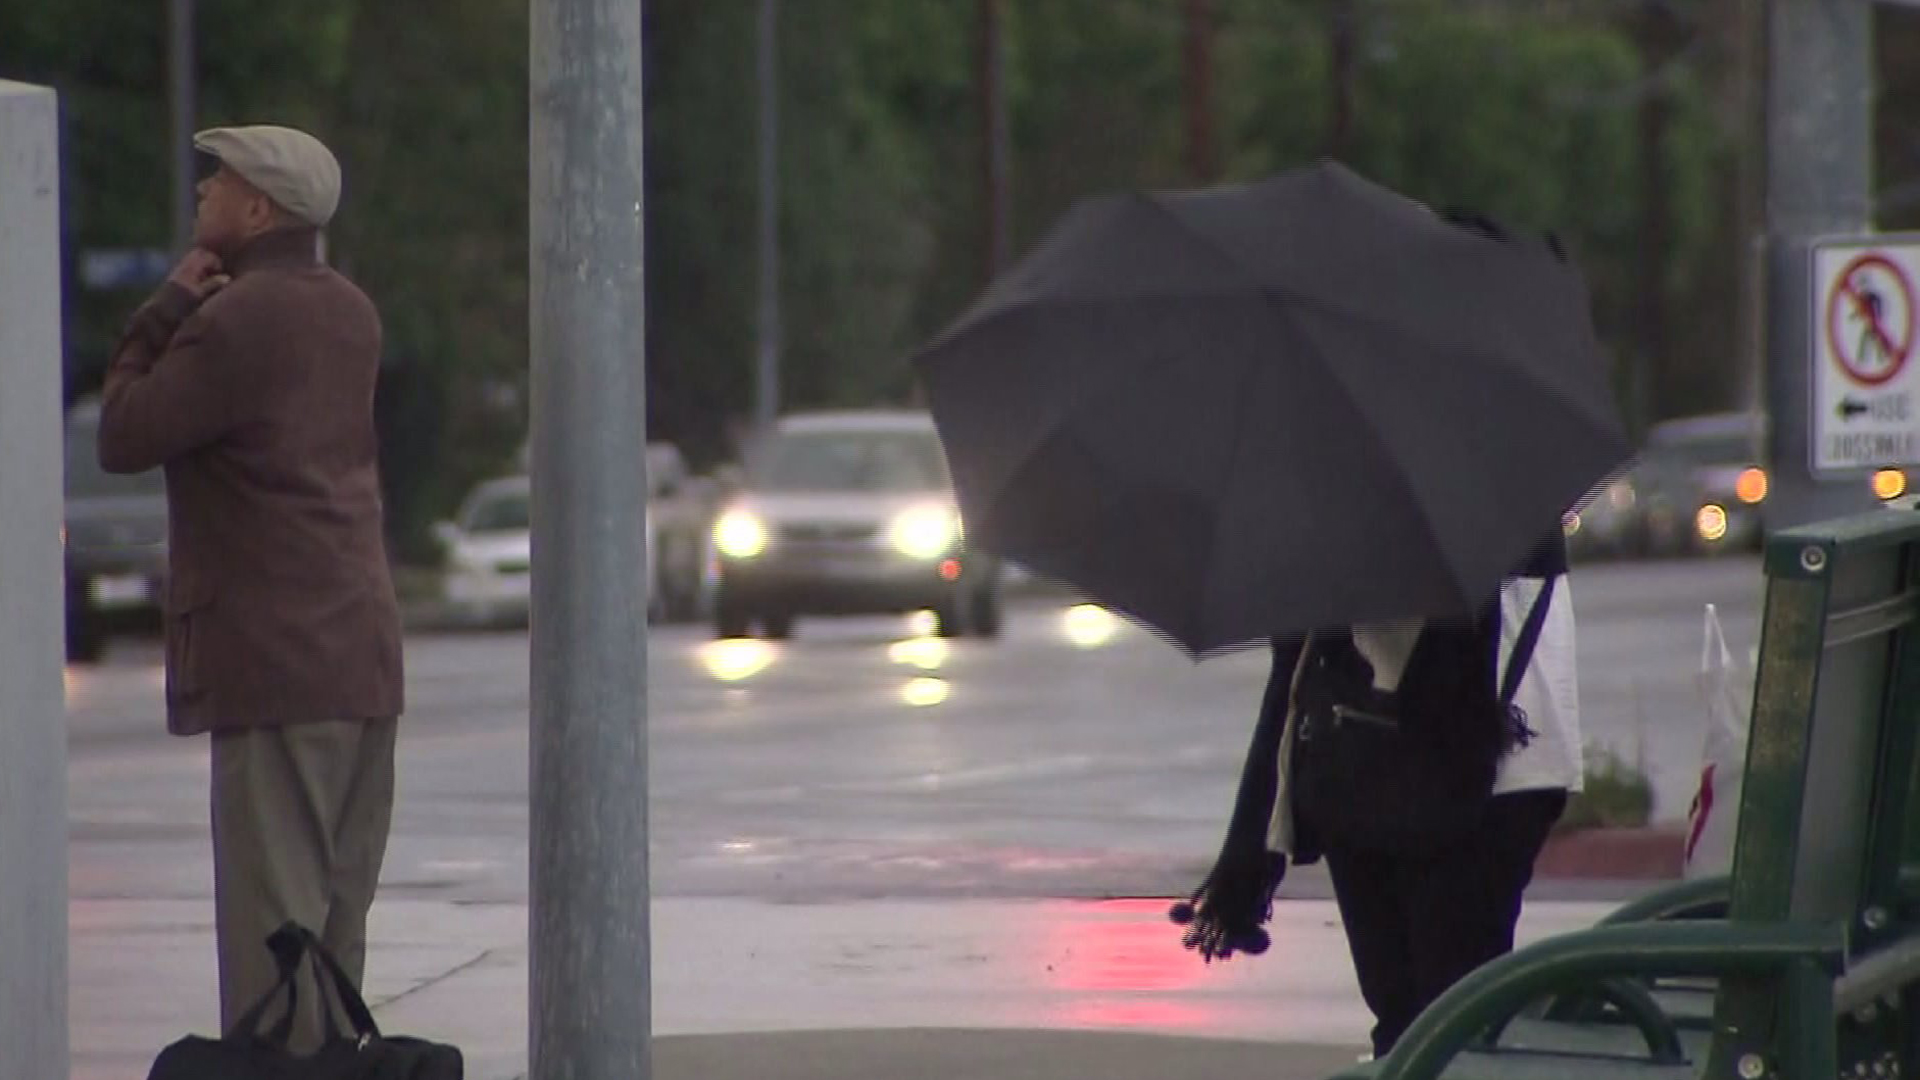 A file photo shows rain in Southern California. (Credit: KTLA)